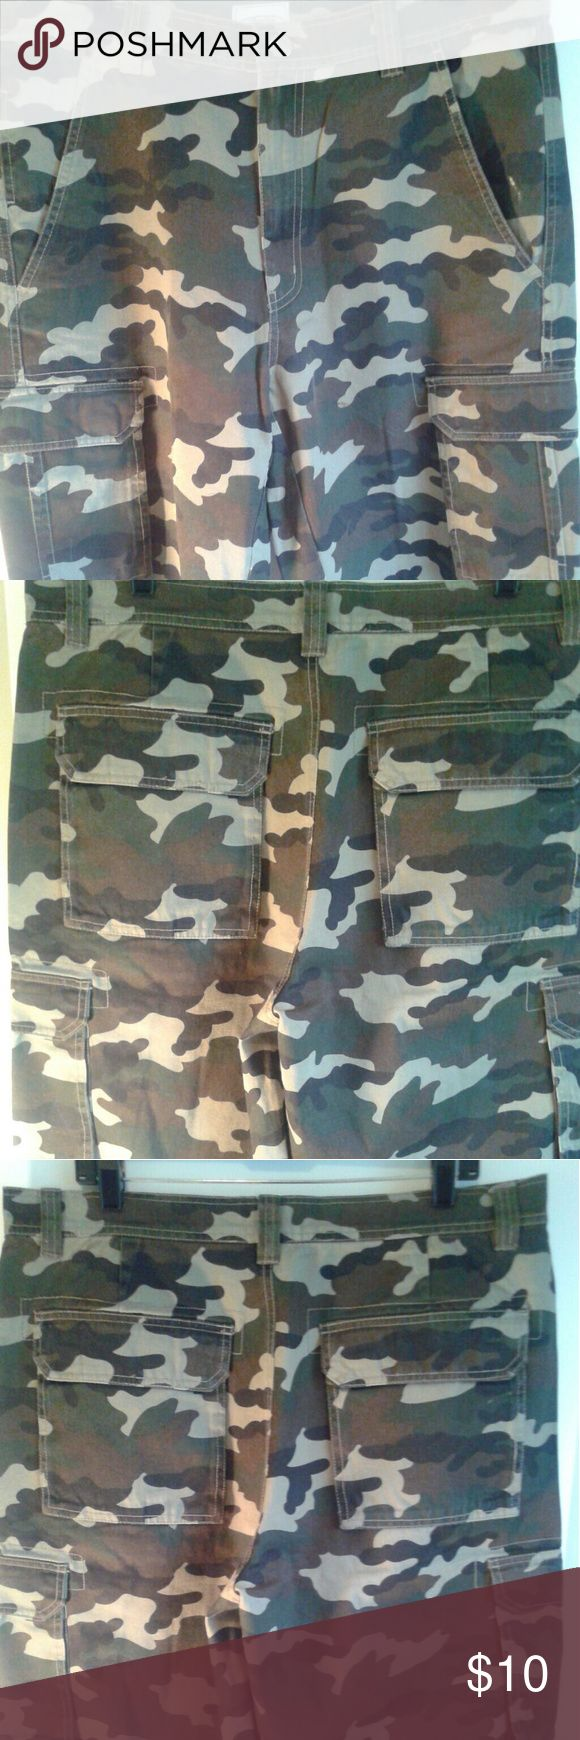 JOURNEYS MEN W 34 Camo Khaki/Chino Cargo Shorts. Great for outdoor fun or any Causal occasion. No signs of wear. Measurement provided upon request. journey Shorts Cargo